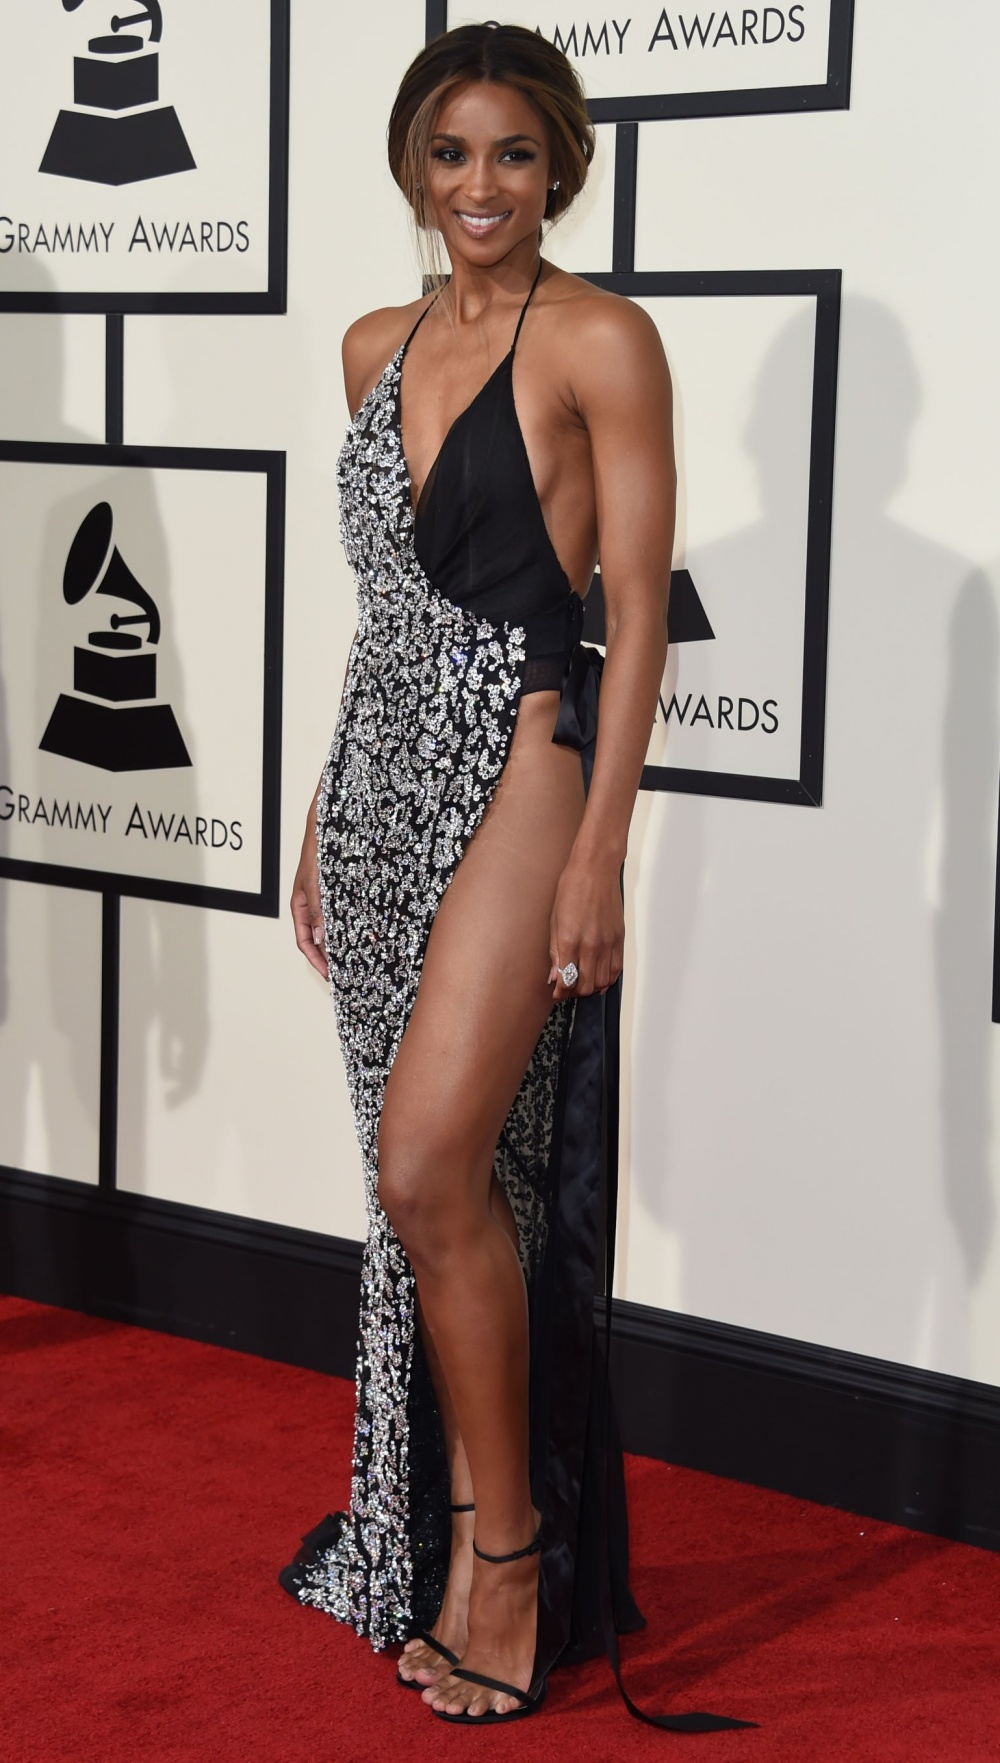 Ciara Grammys 2016 Best Dressed Celebrities